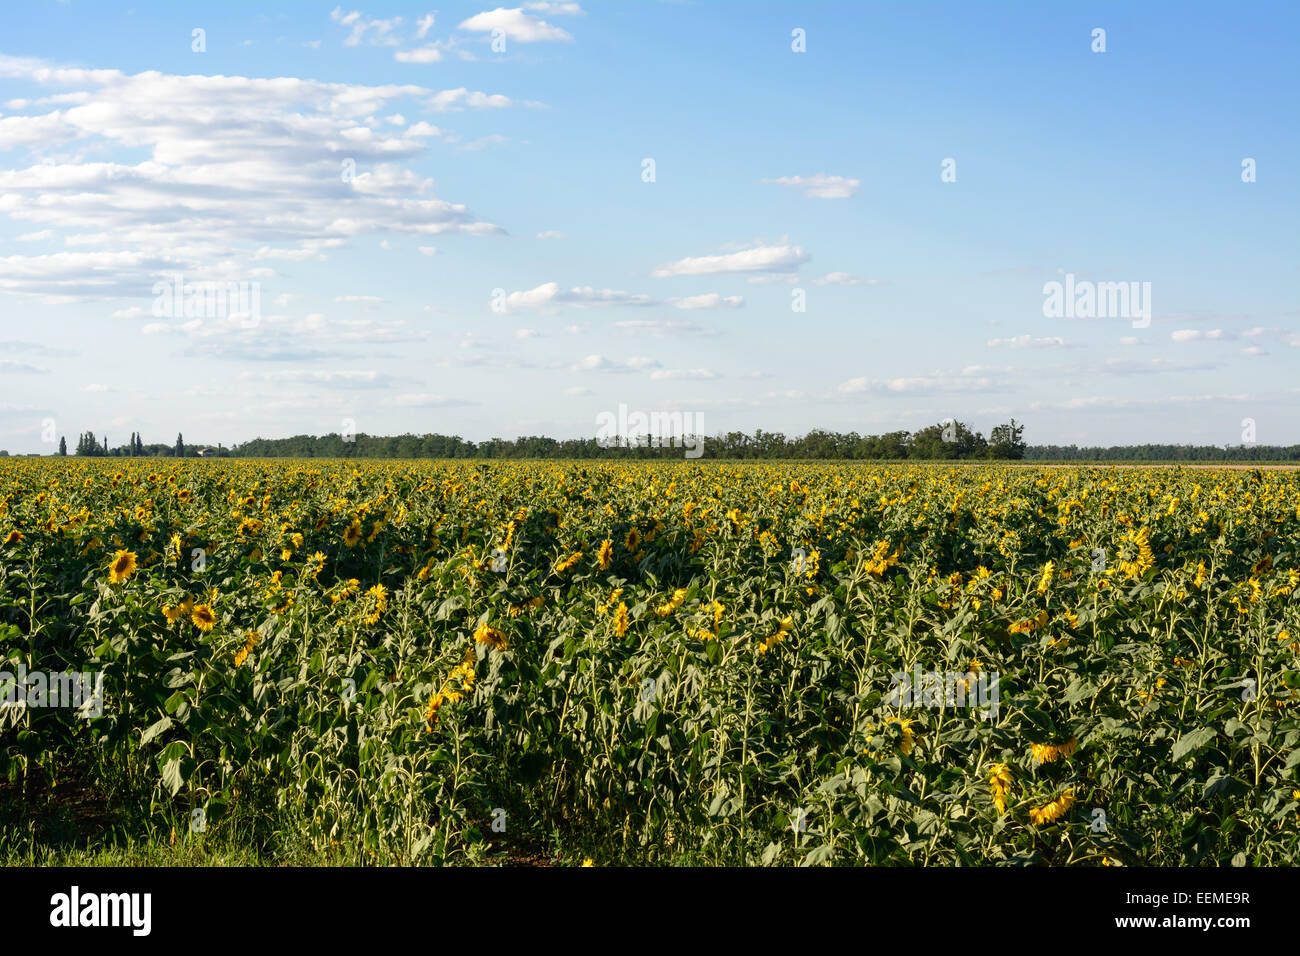 Field of sunflowers, the sky and clouds - Stock Image